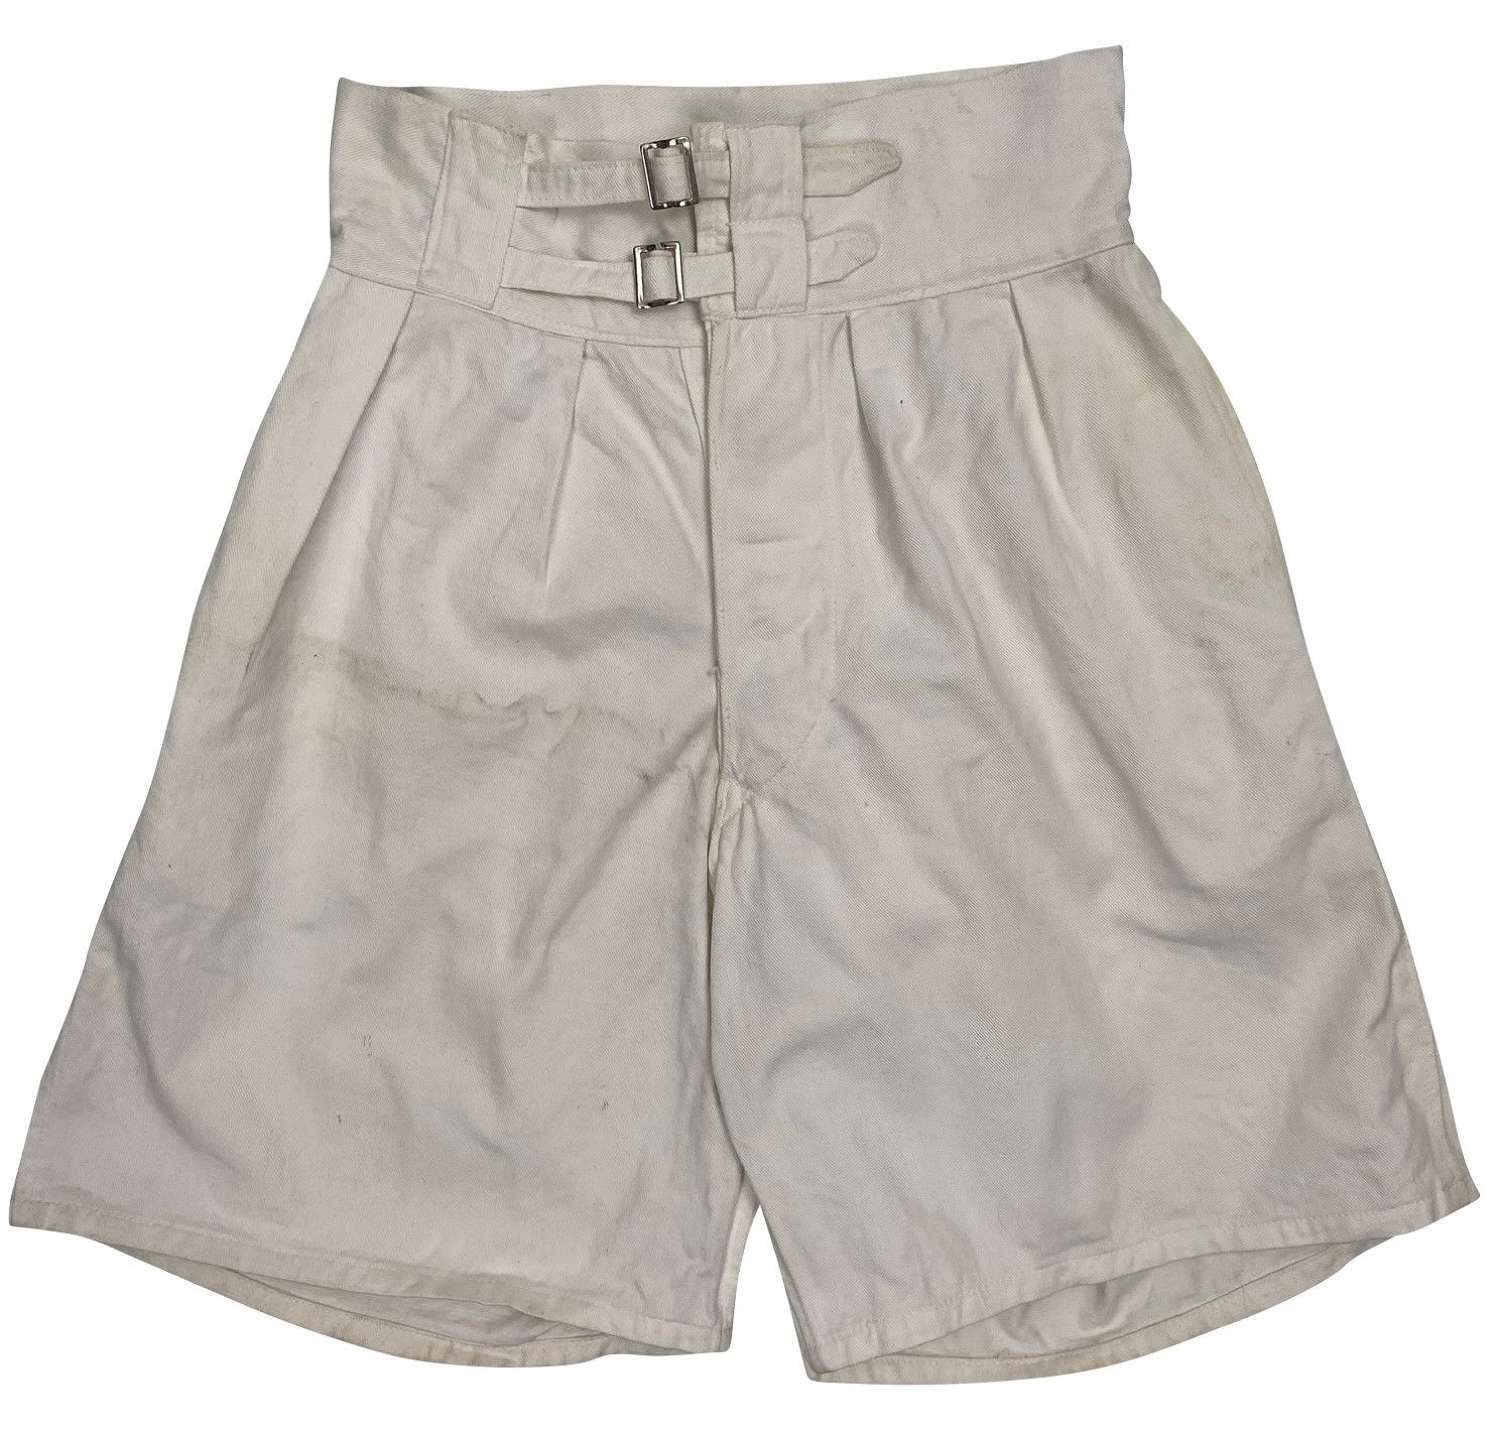 Original 1940s White Royal Navy Shorts